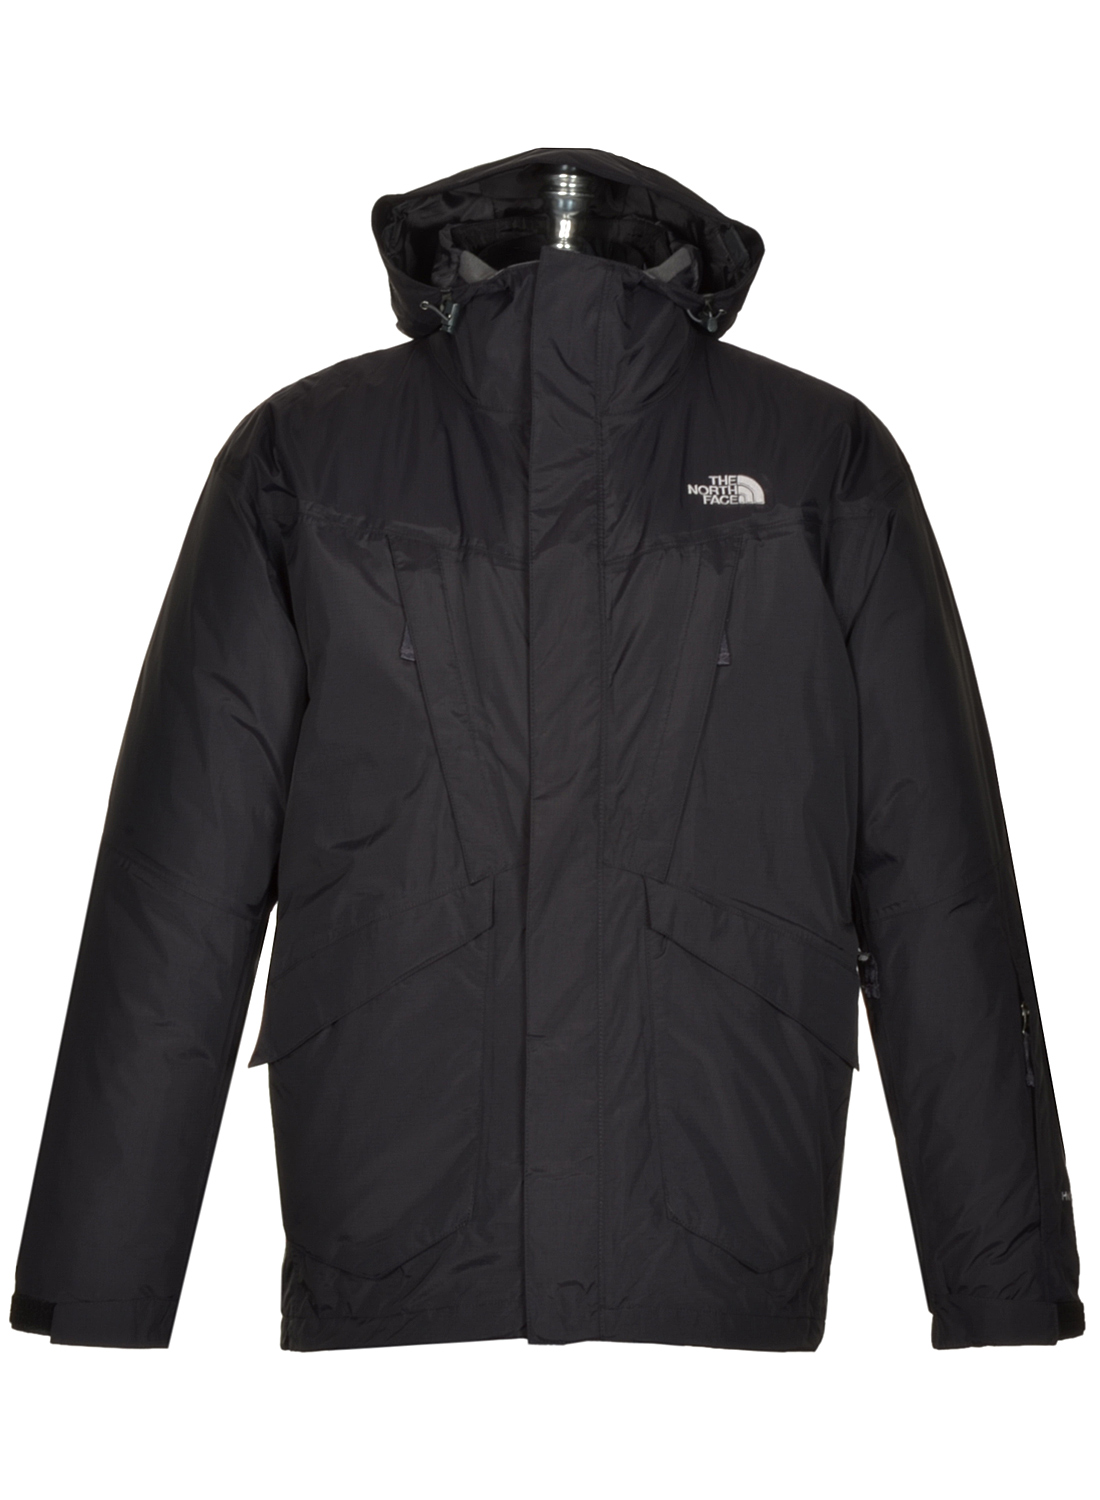 349 the north face hyvent mens landsat triclimate 3 in 1 jacket hoodie black. Black Bedroom Furniture Sets. Home Design Ideas